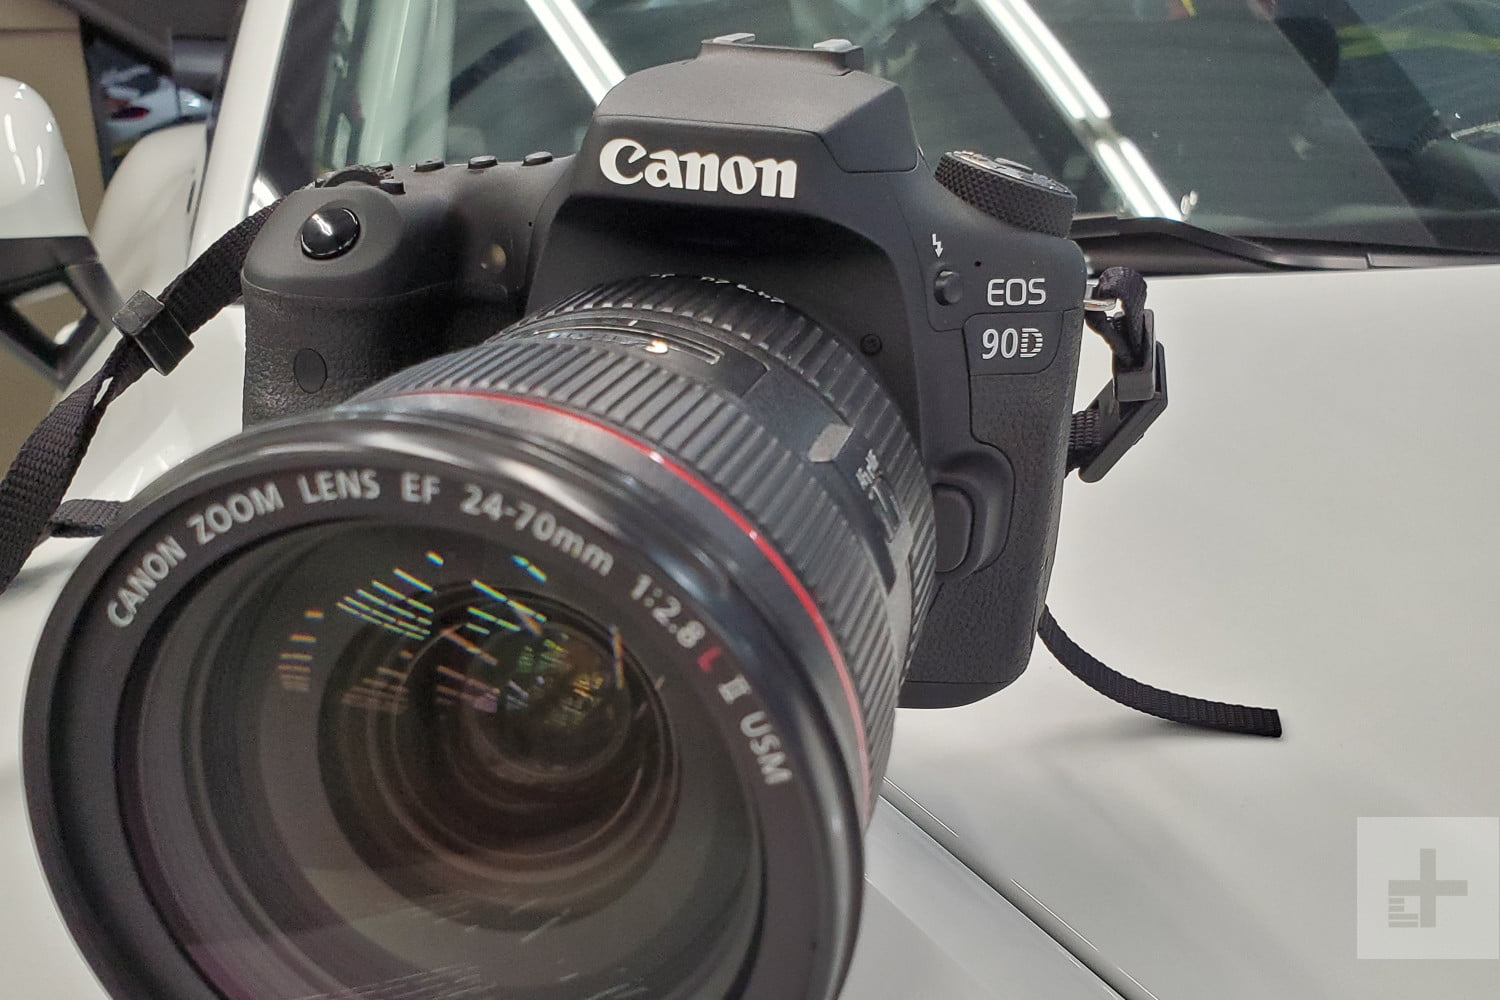 canon eos 90d m6 mark ii set new bar 32mp aps c hands on 3